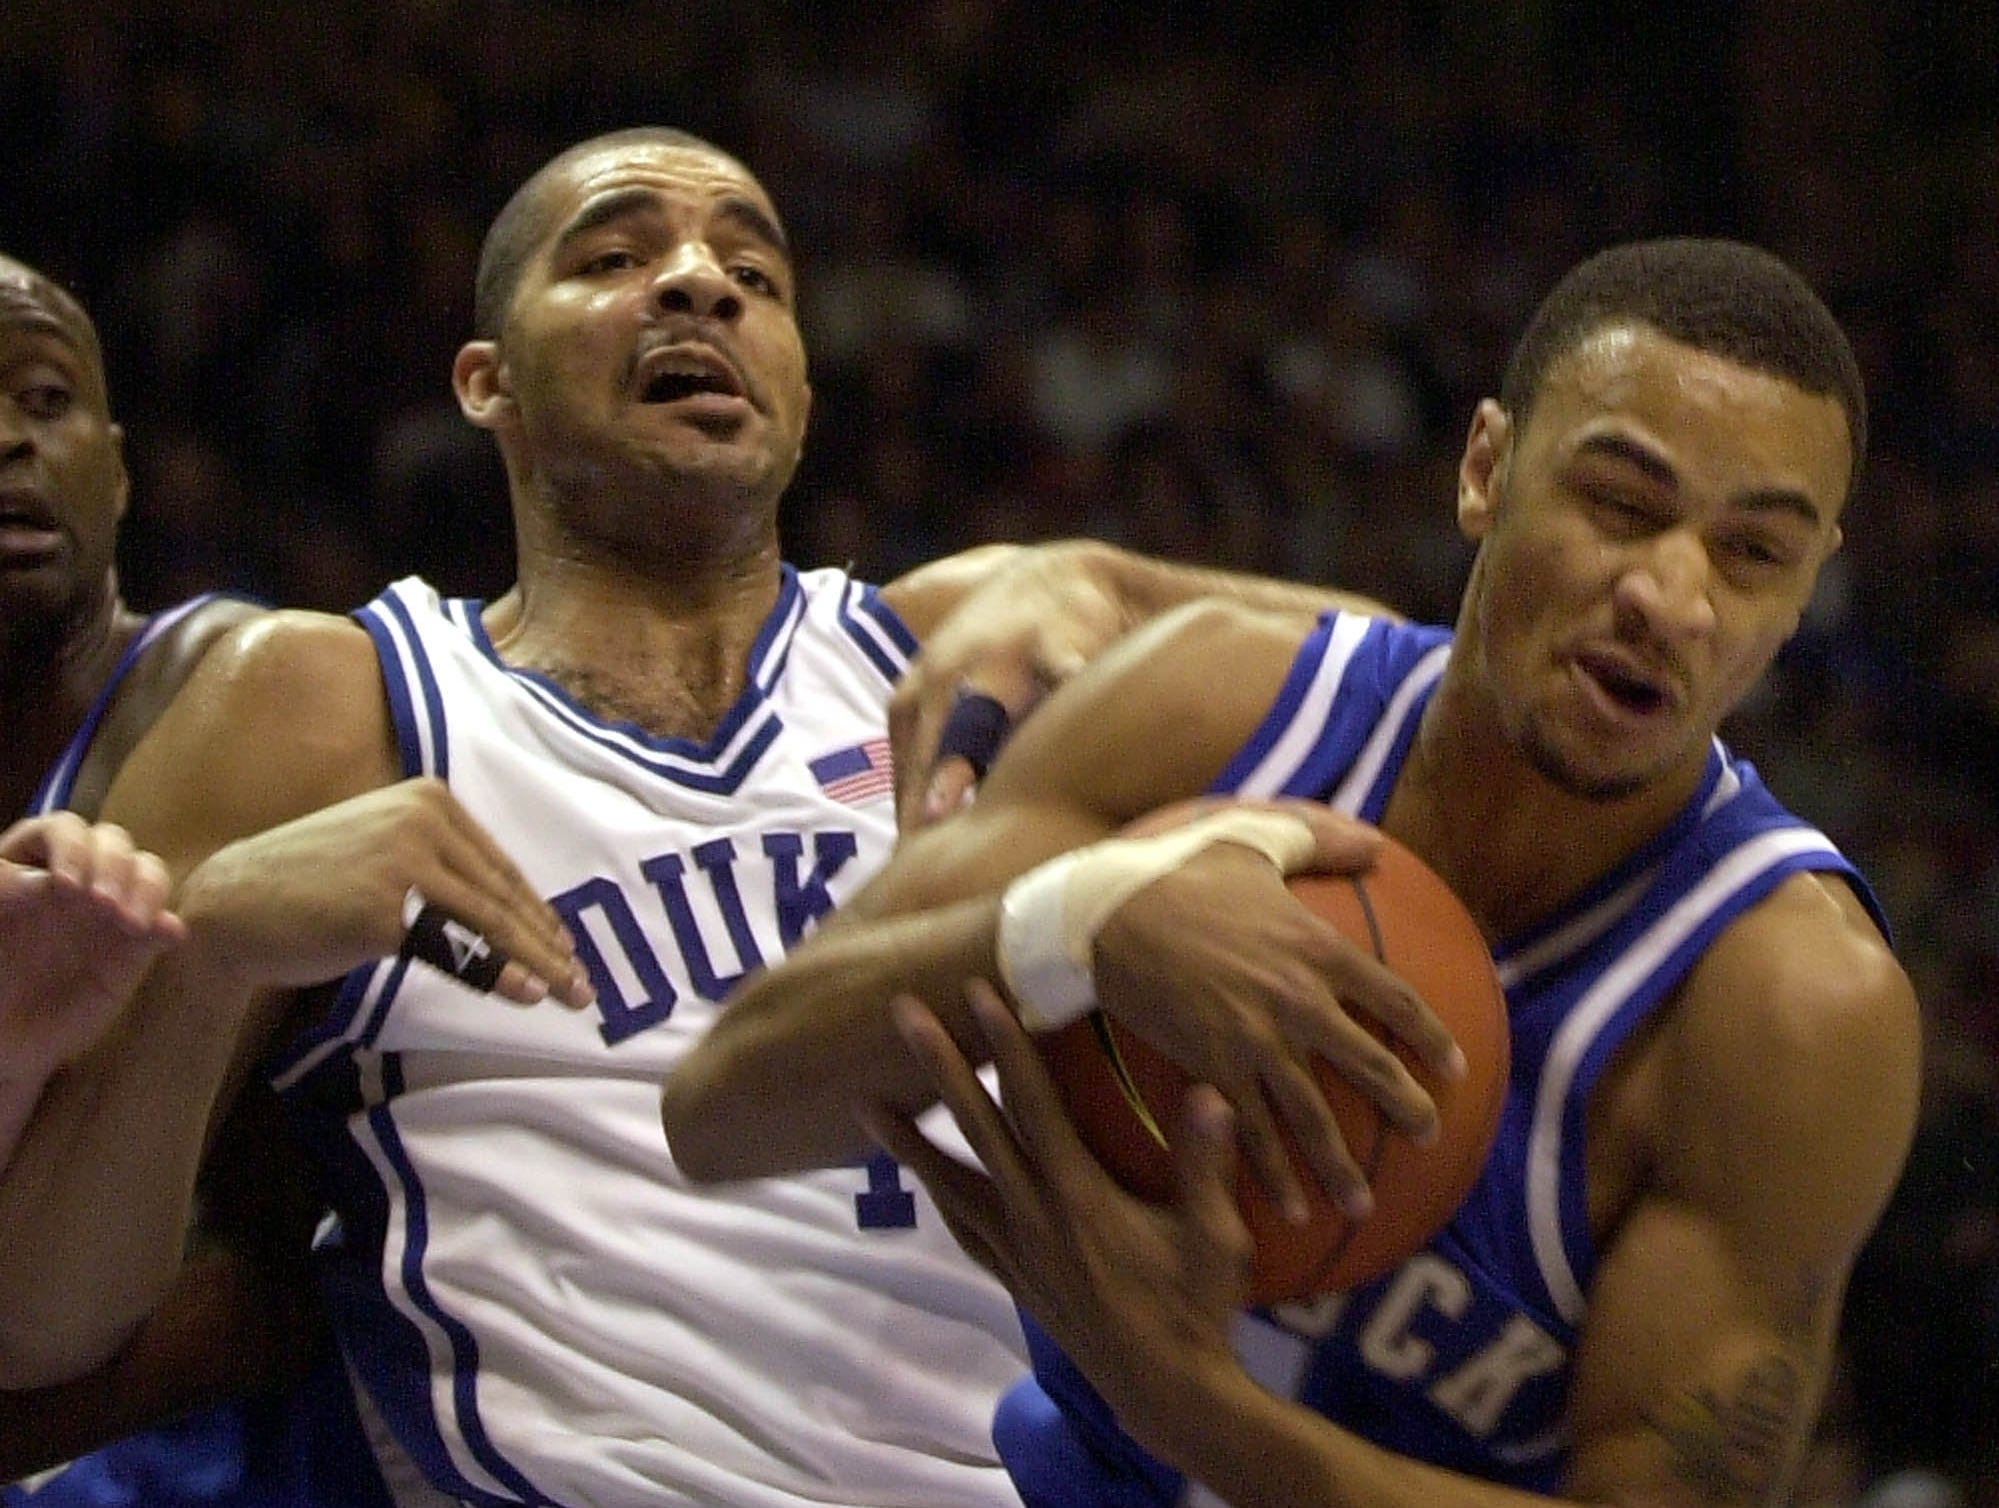 Duke's Carlos Boozer, left, defends Kentucky's Gerald Fitch during the first half of the Jimmy V classic in East Rutherford, N.J. Tuesday Dec., 18, 2001.